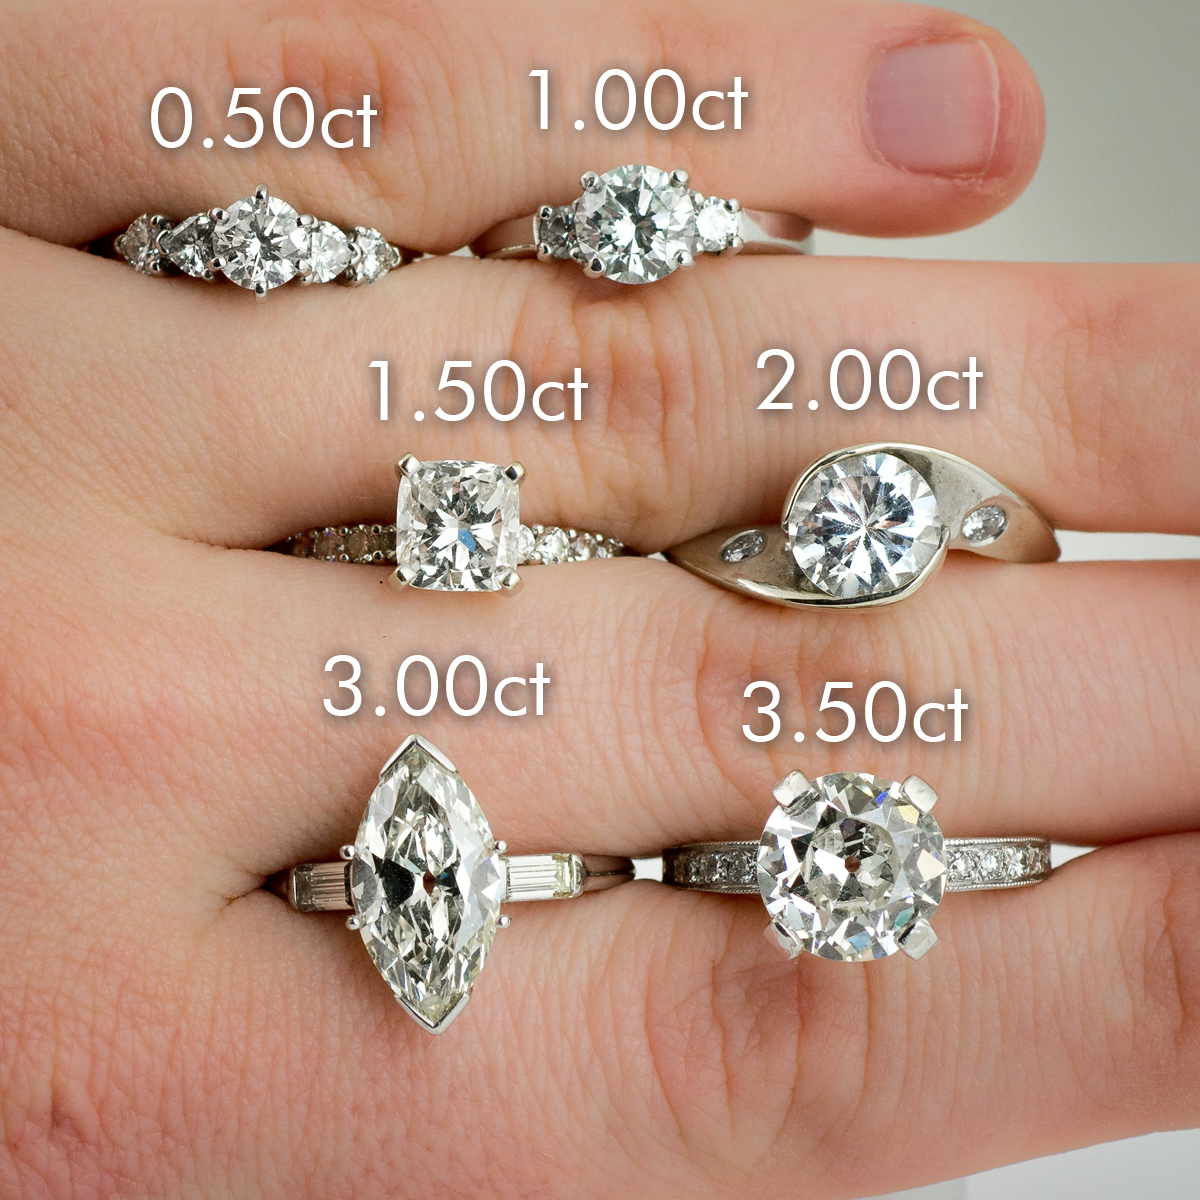 promise marks and at did vvtlvlq carat jump full diamond rings engagement cute you half prices wedding that know the size